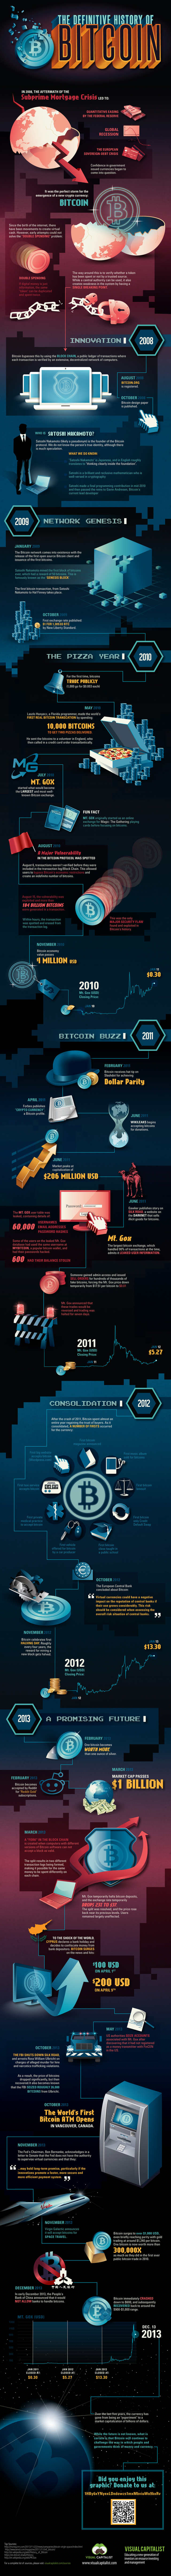 The-History-of-Bitcoin-infographic-1